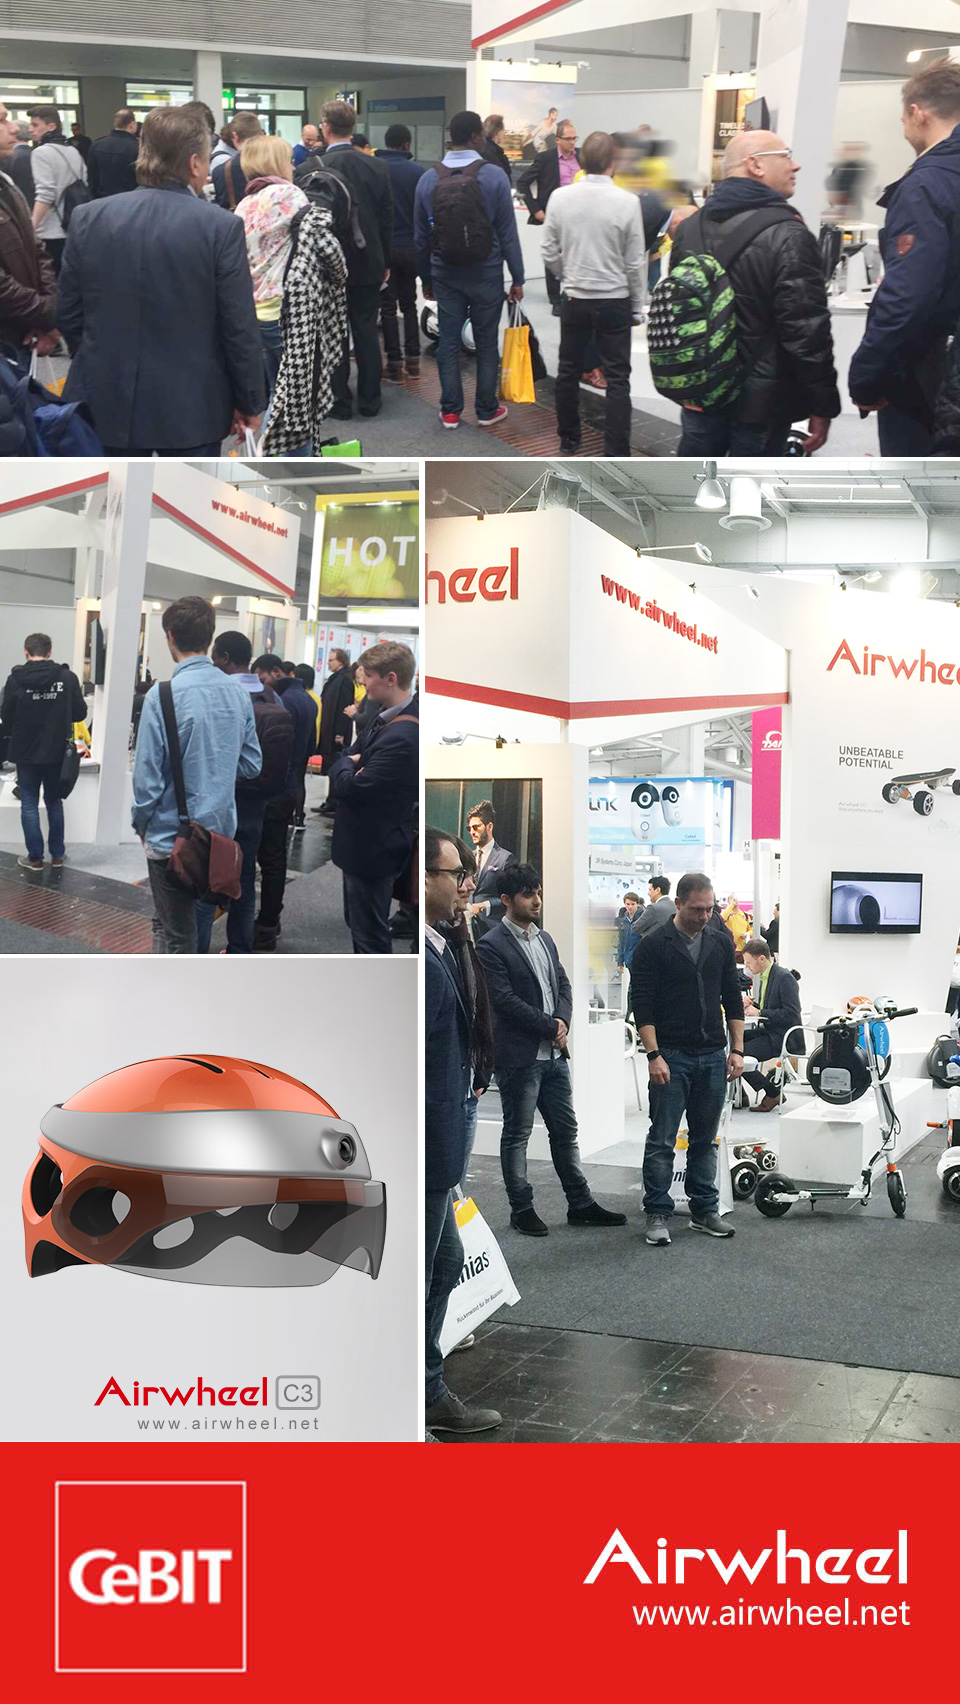 cebit-airwheel-5